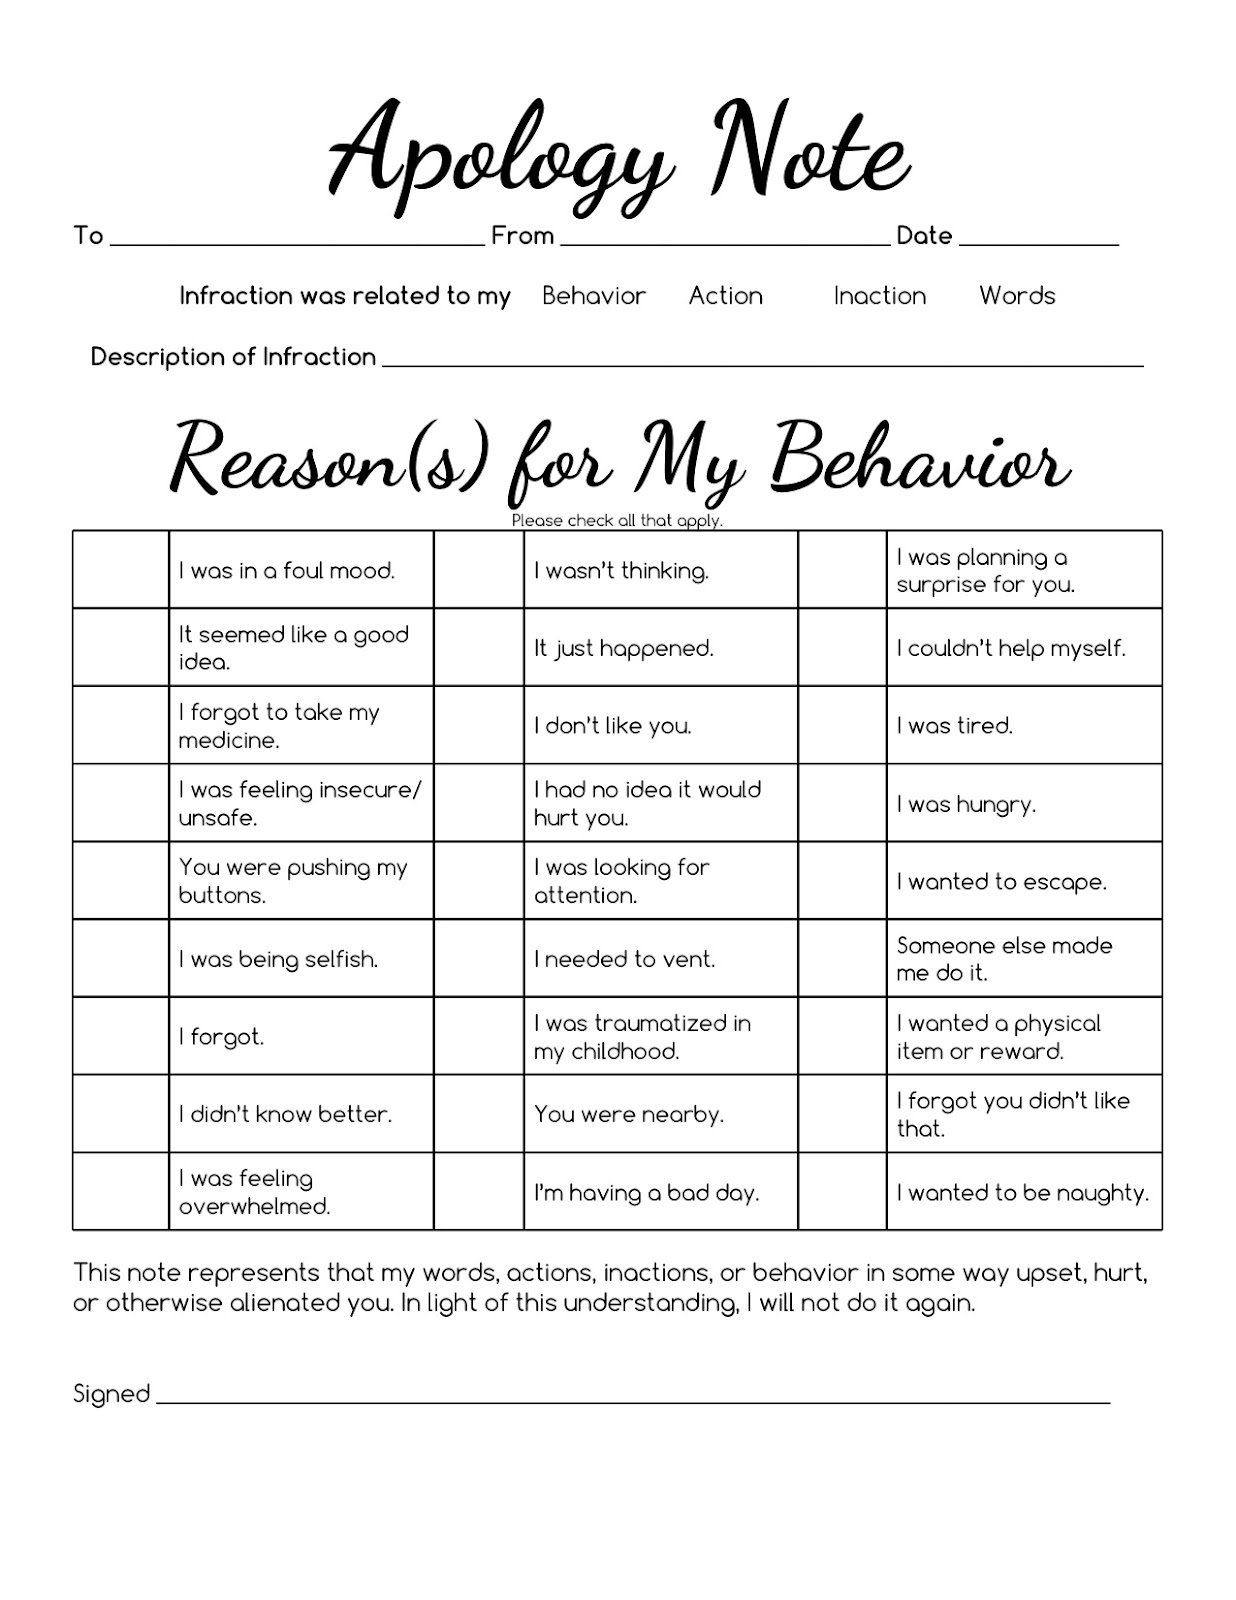 Sped Head Apology Note Checklist